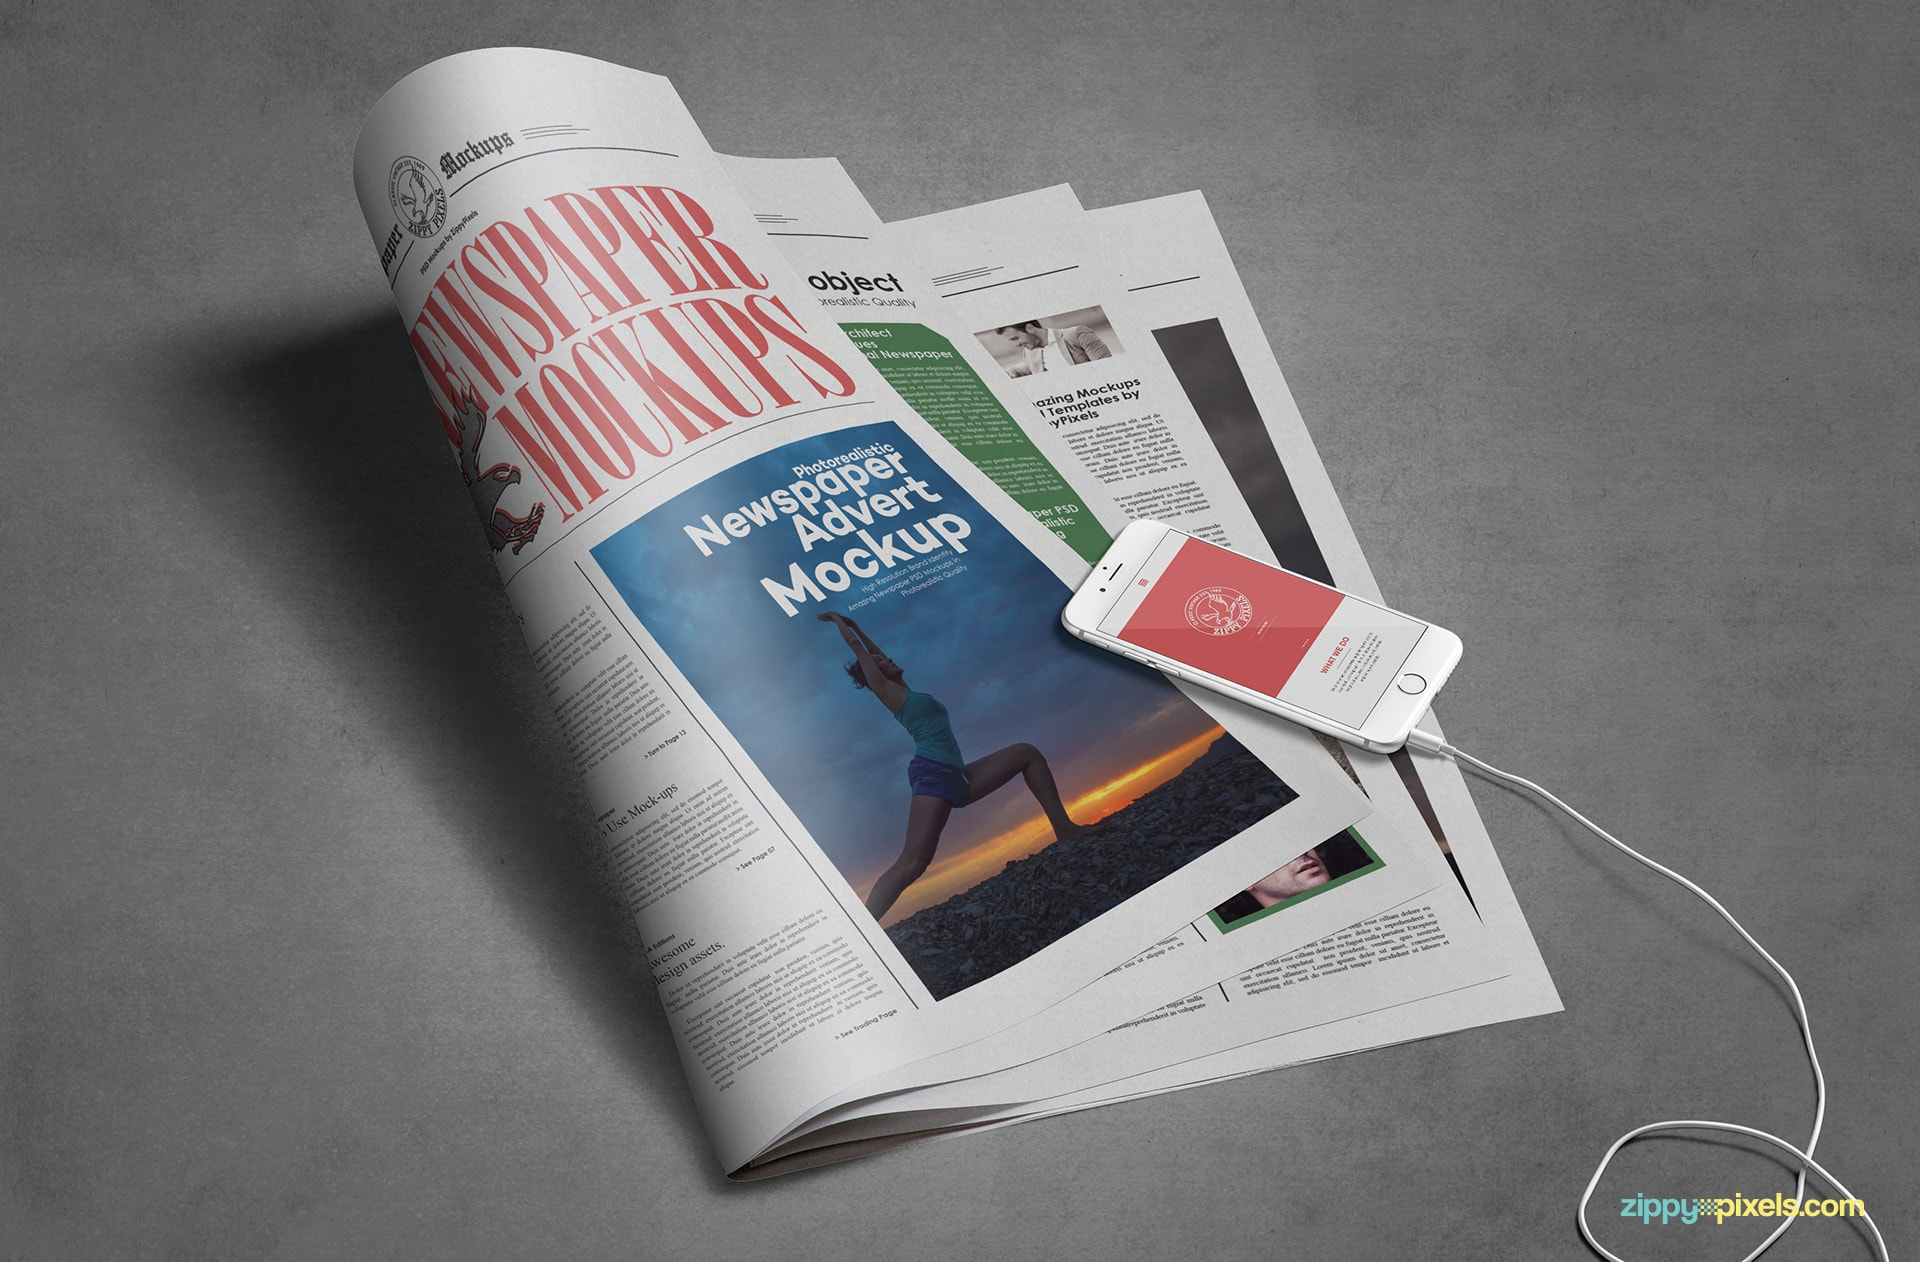 05-newspaper-psd-mockup-824x542